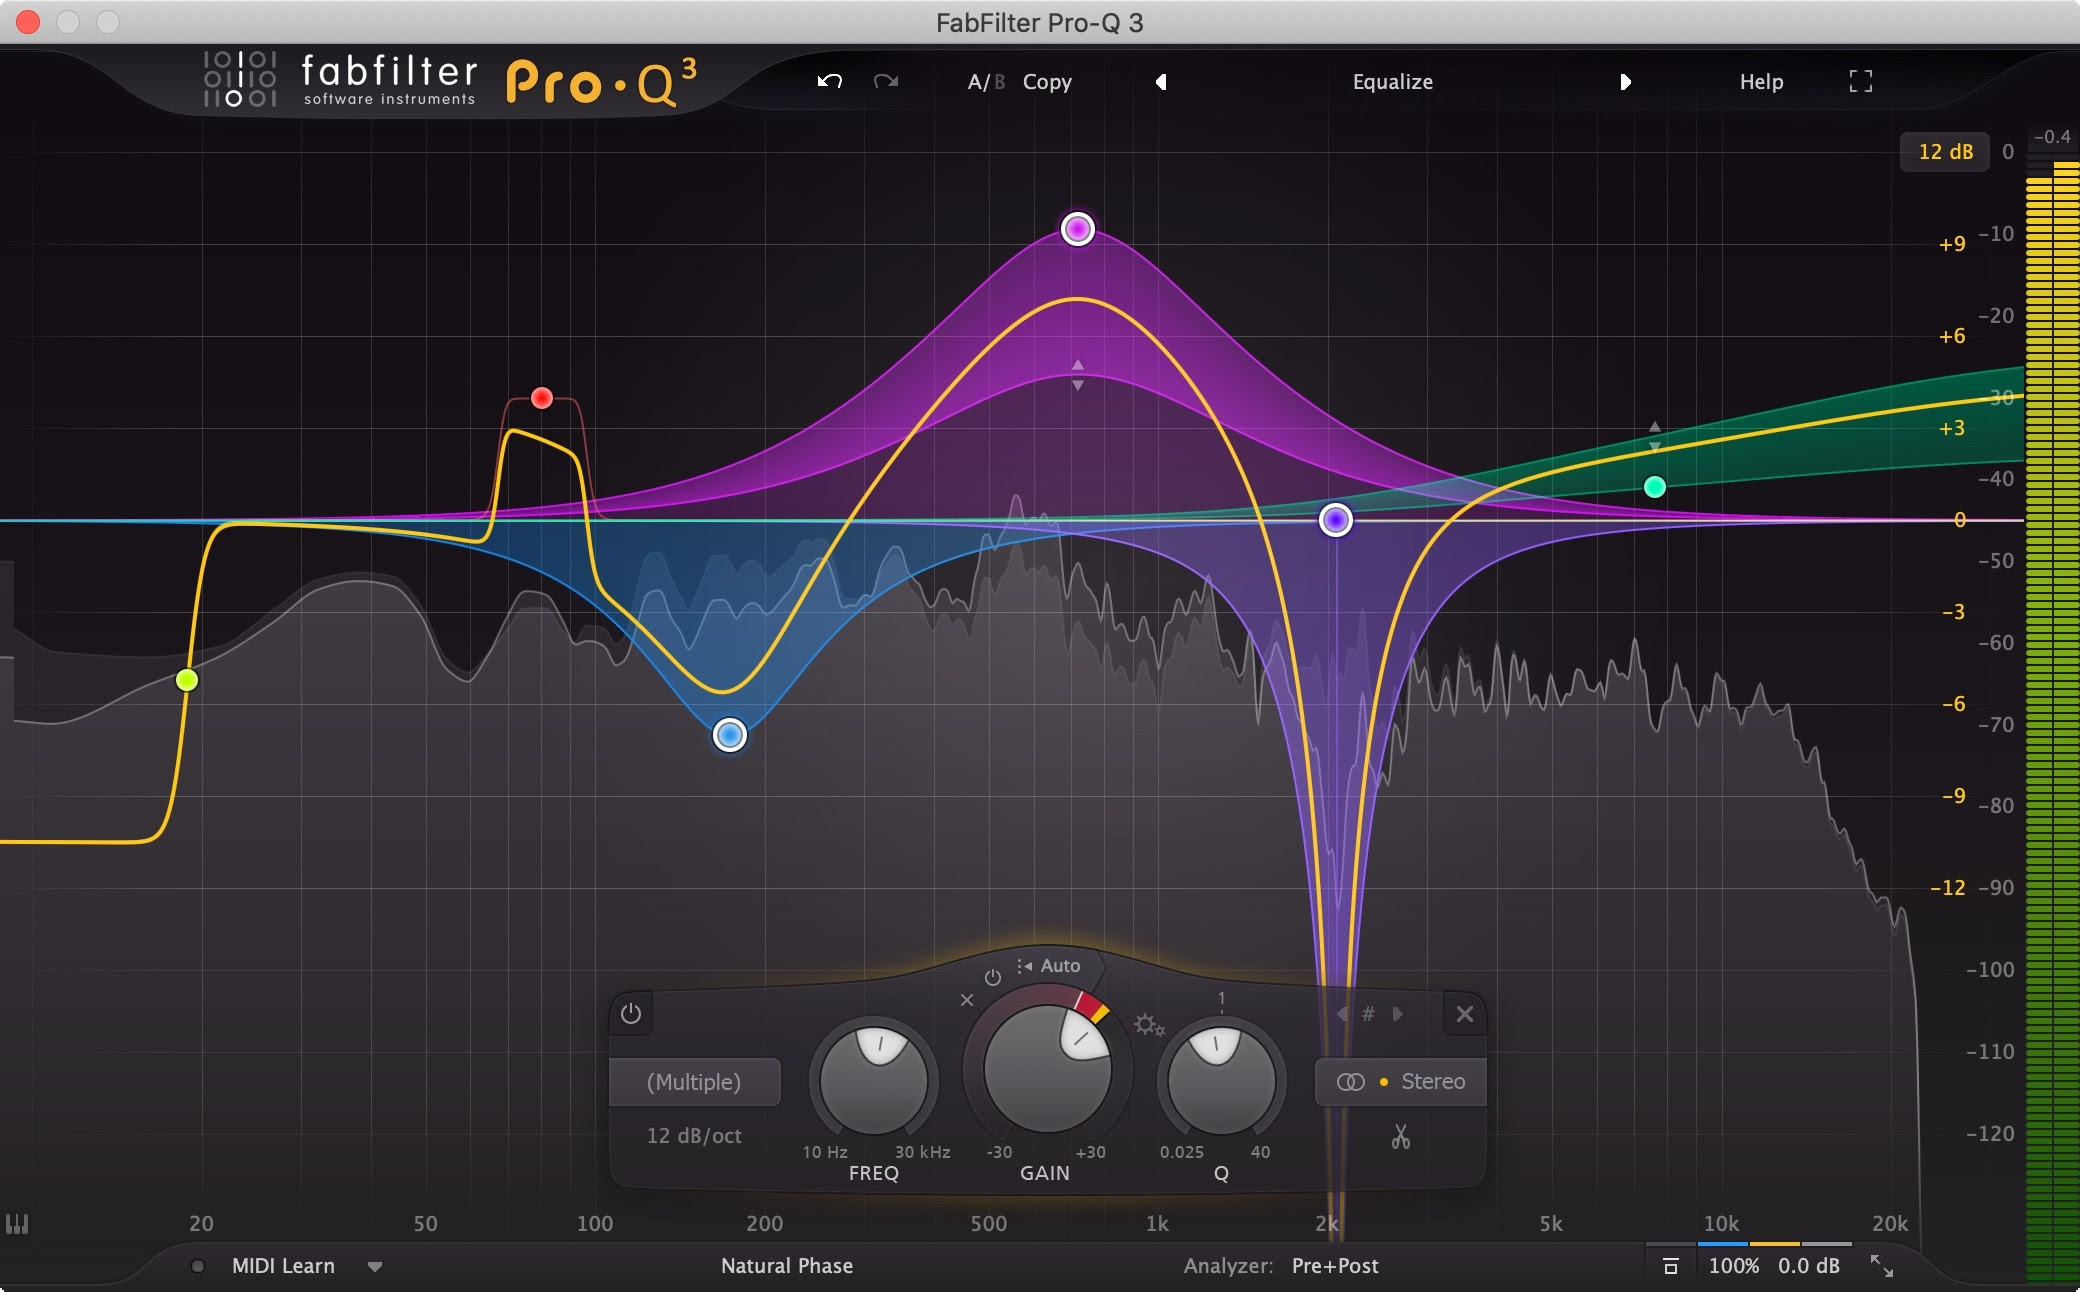 FabFilter announces Engineering Emmy® Award win for FabFilter Pro-Q 3 equalizer plug-in